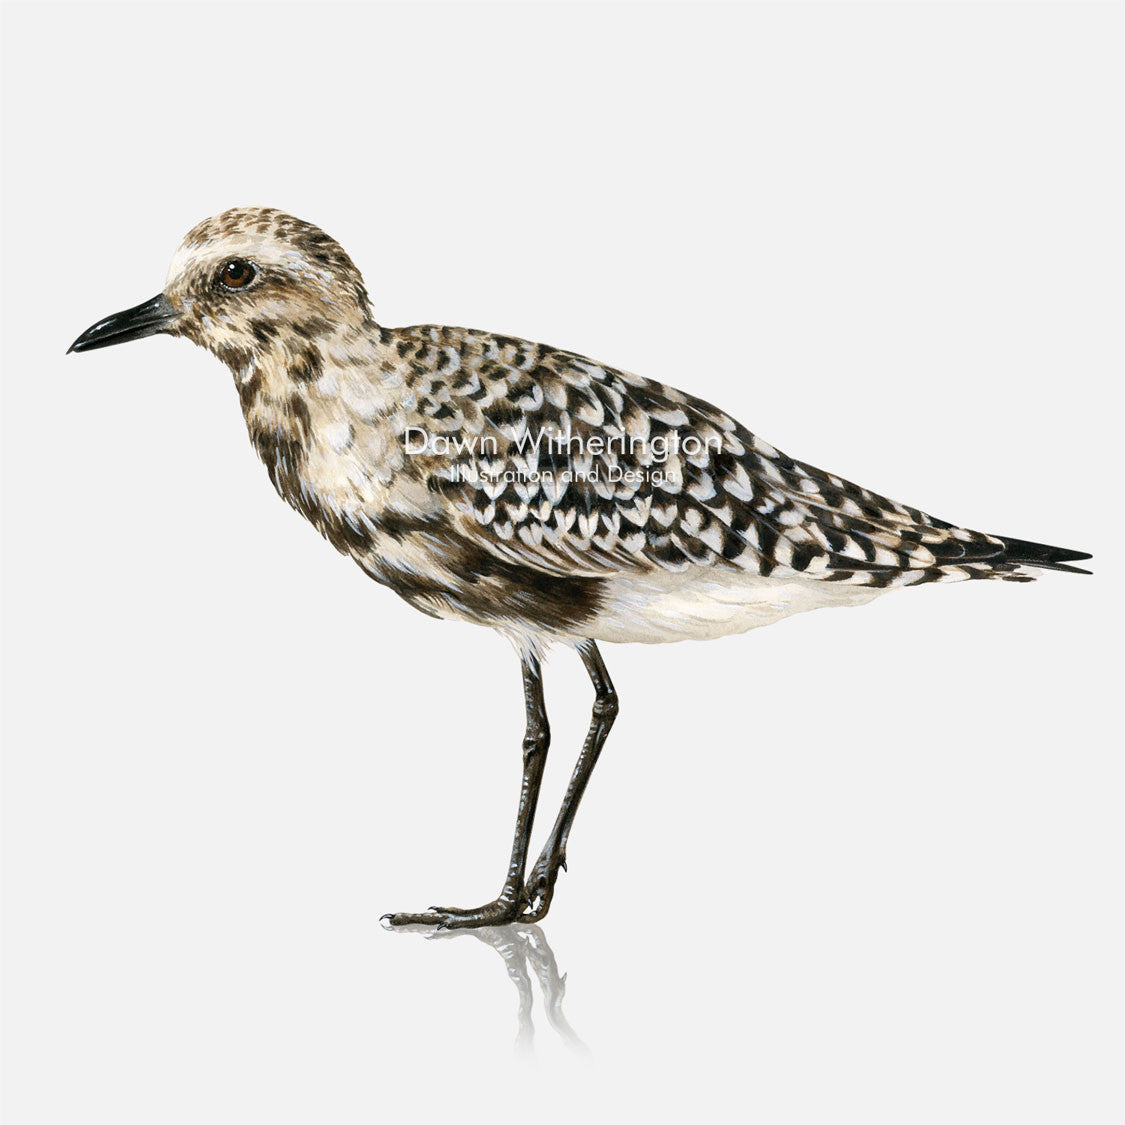 This beautiful illustration of a black-bellied plover, Pluvialis squatarola, with vestiges of breeding plumage, is biologically accurate in detail.